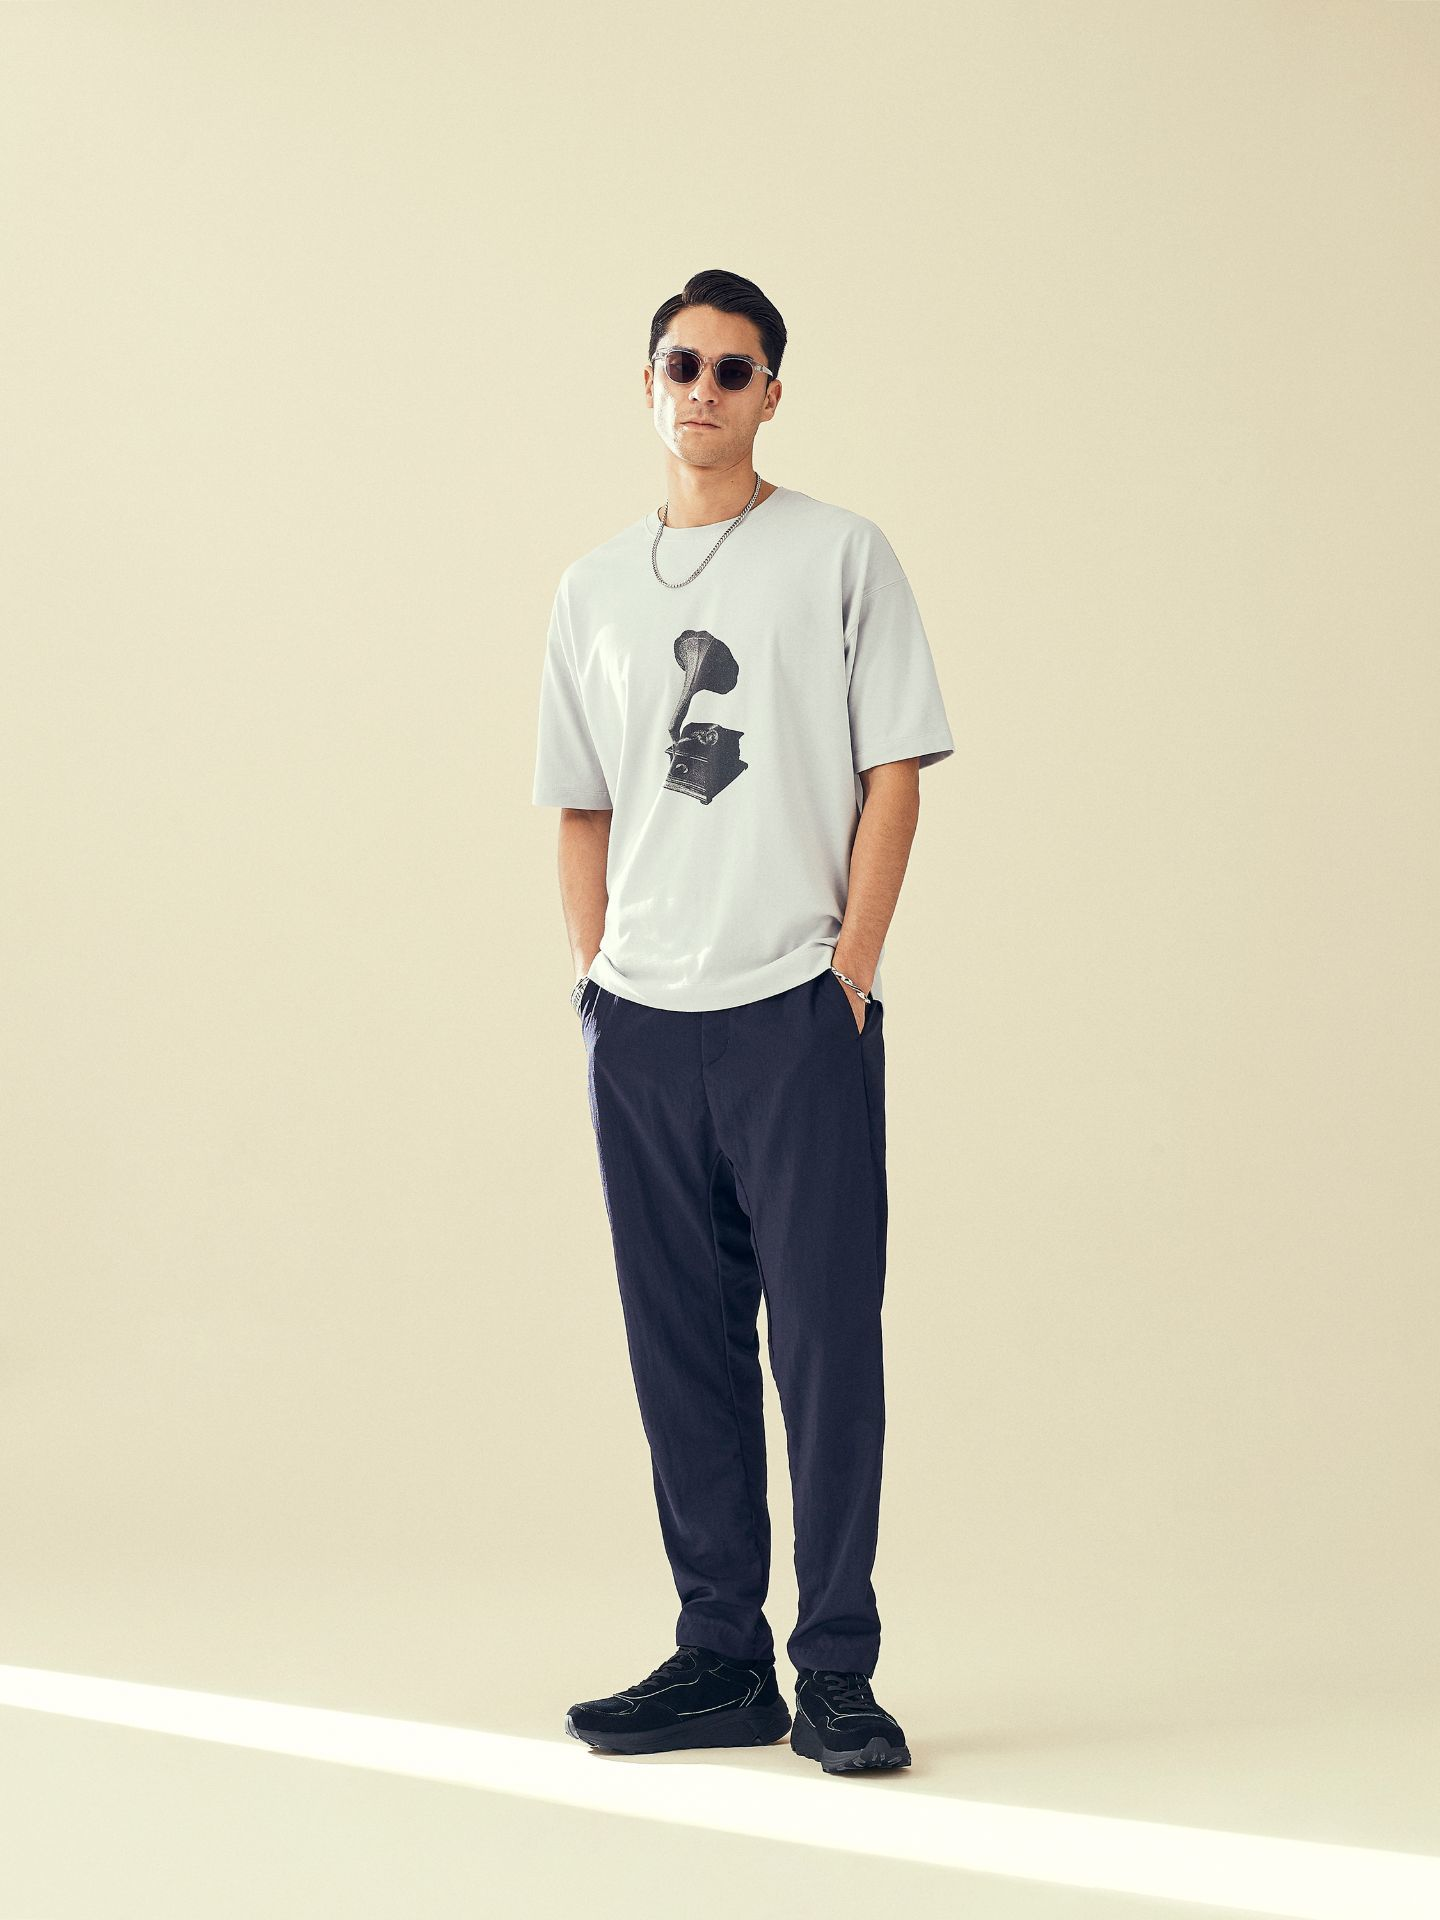 gentleman 2019 summer lookbook 1 58